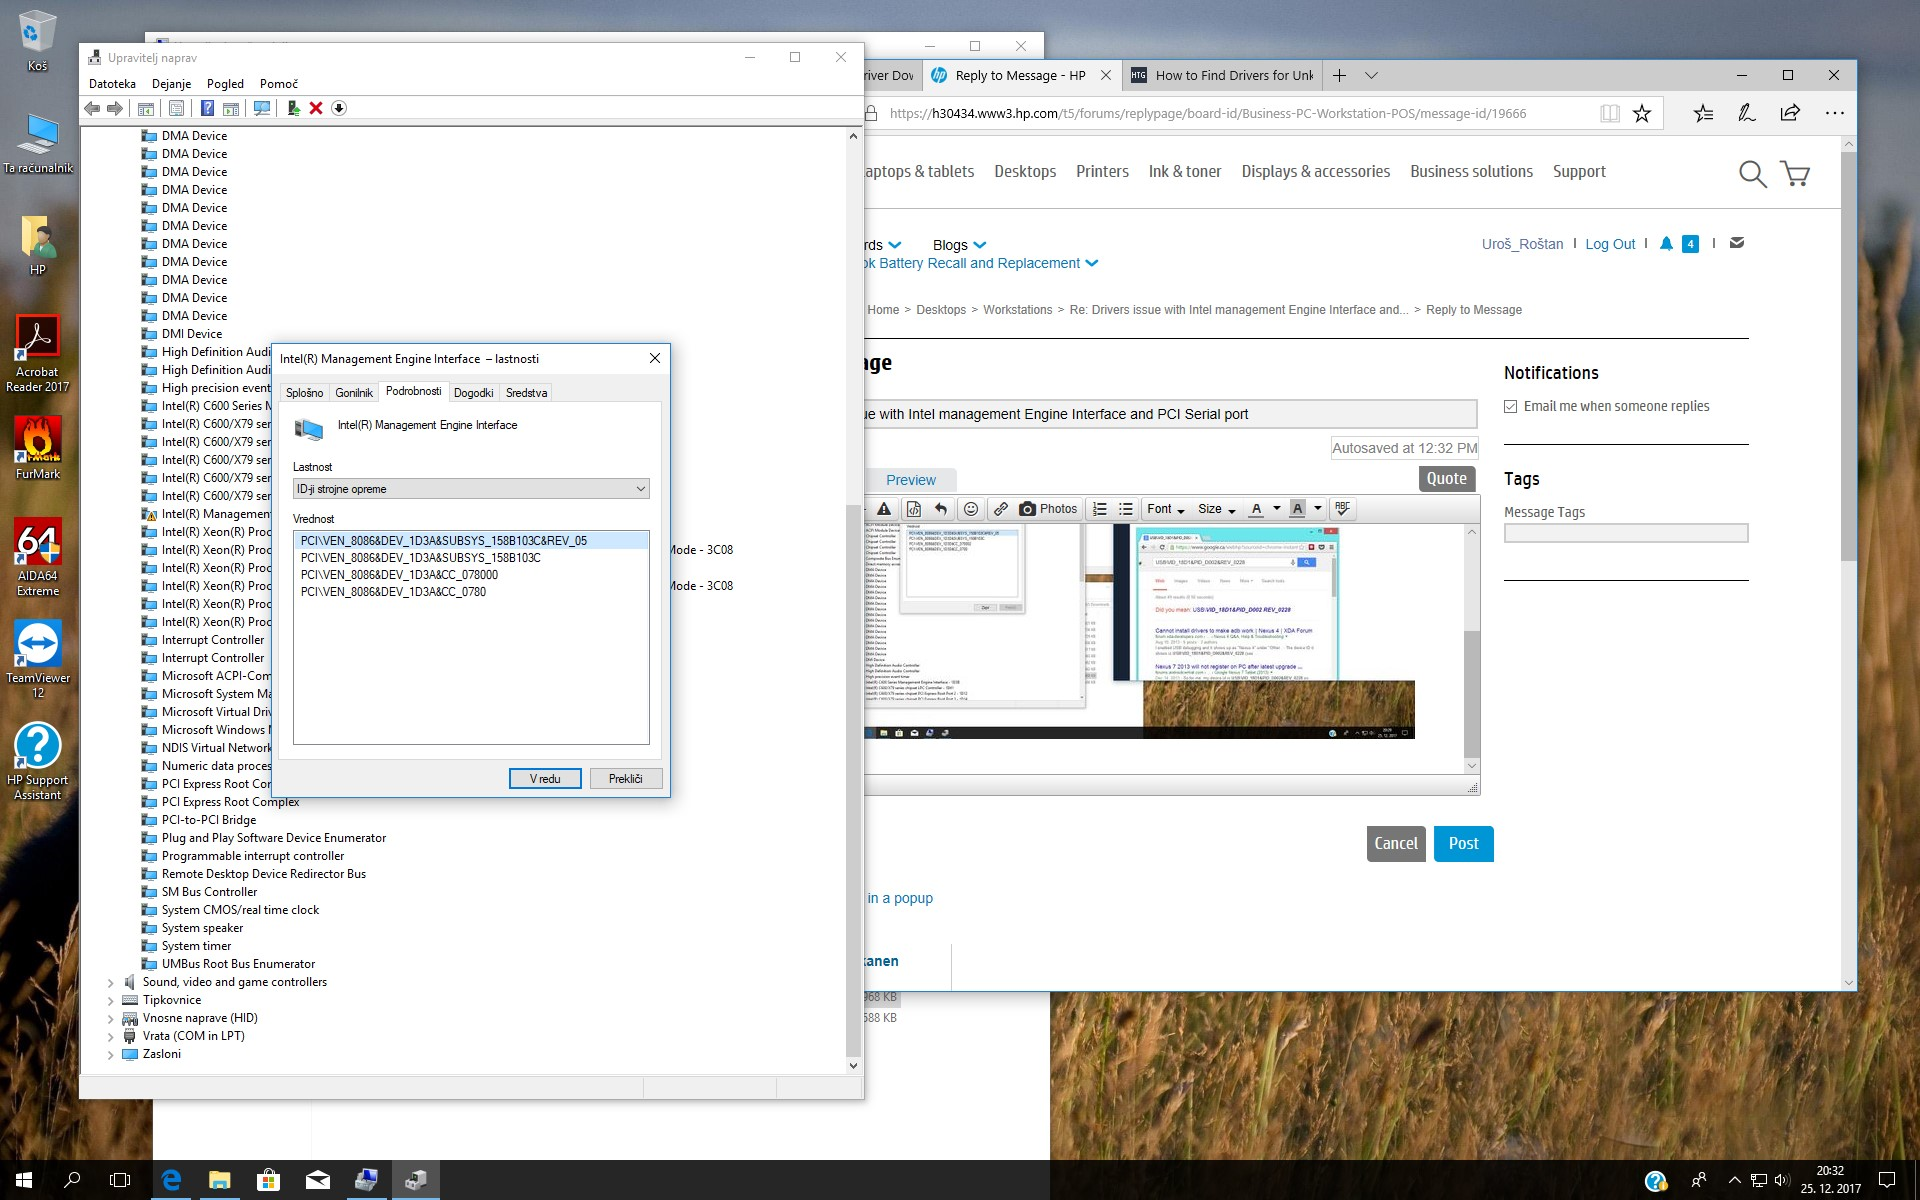 Drivers issue with Intel management Engine Interface and PCI